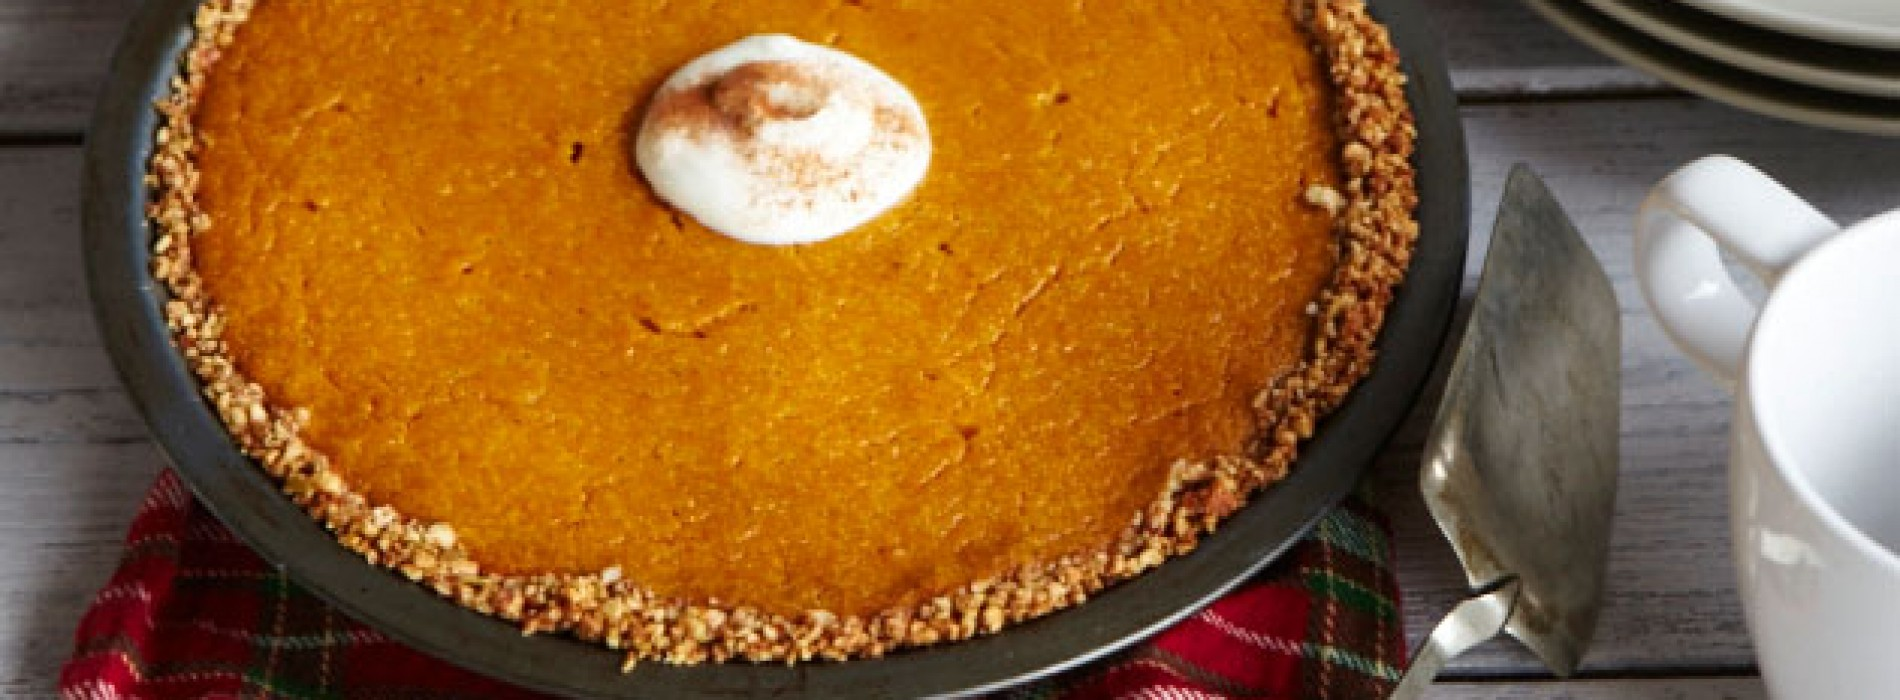 Sponsored Post: Pumpkin Pie with Nut Crust, plus a Cuisinart Giveaway!